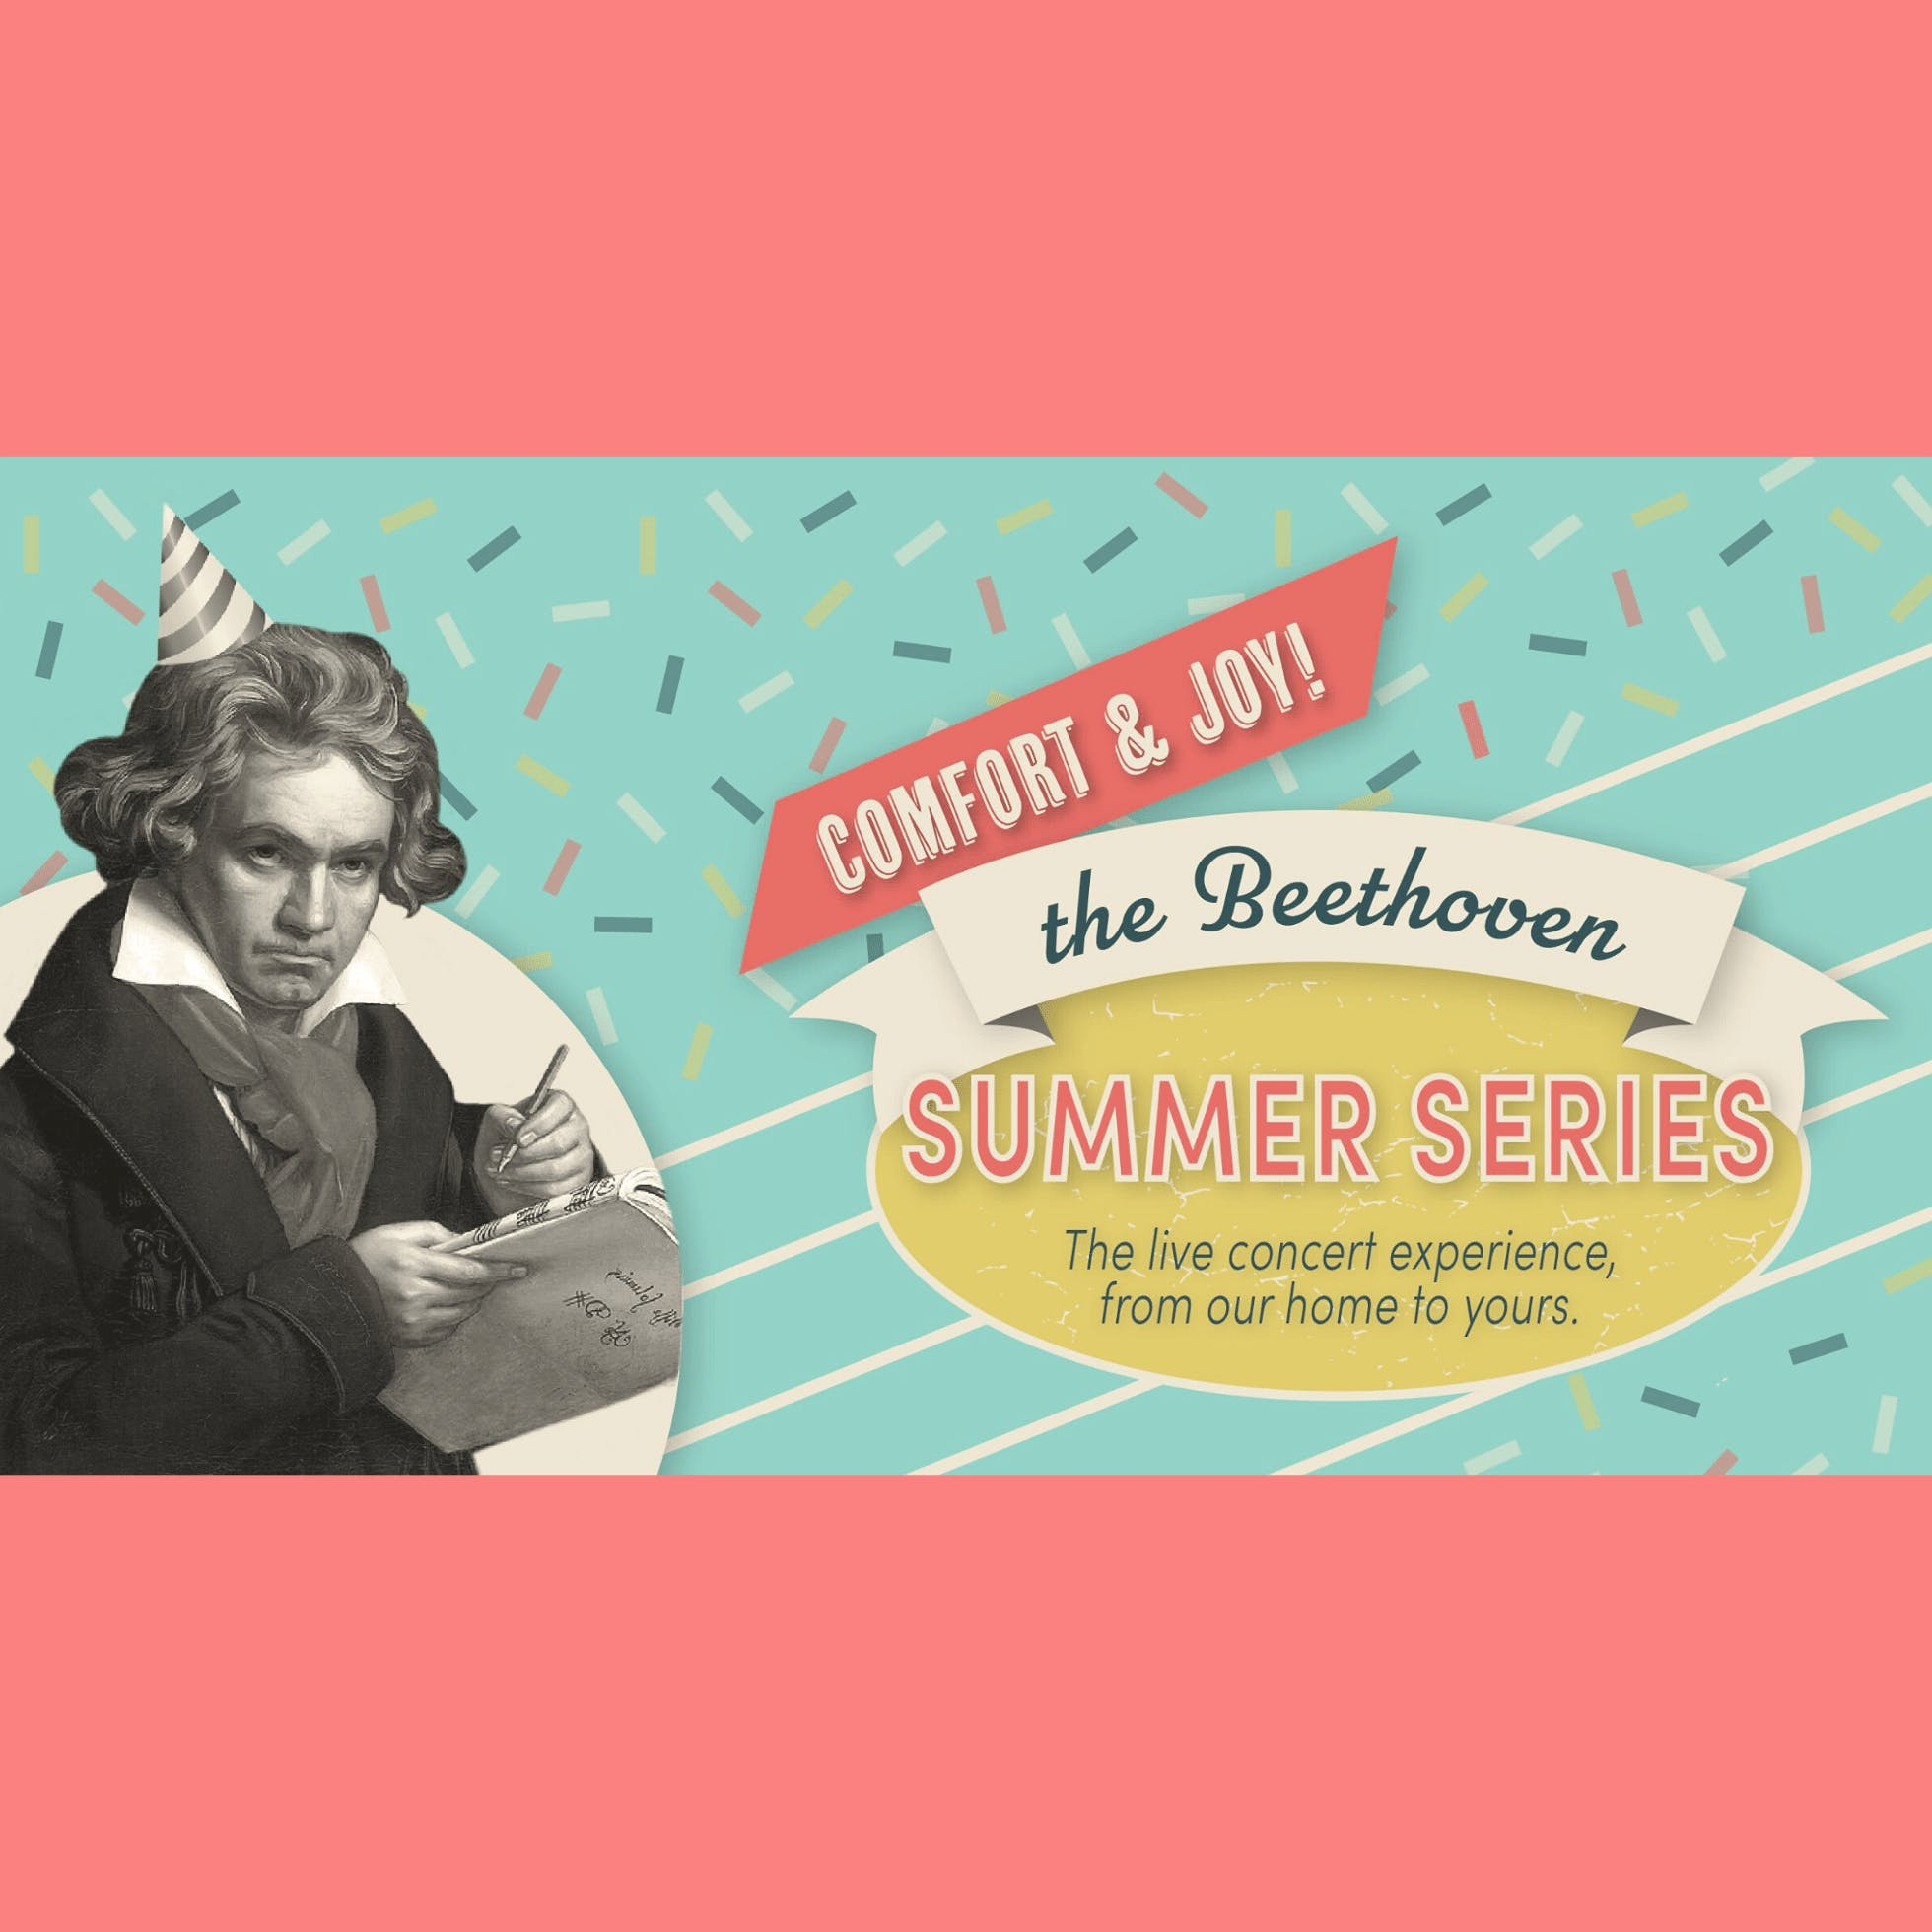 Richmond Symphony Summer Series: Jeannette Jang, Violin & Russell Wilson, Piano